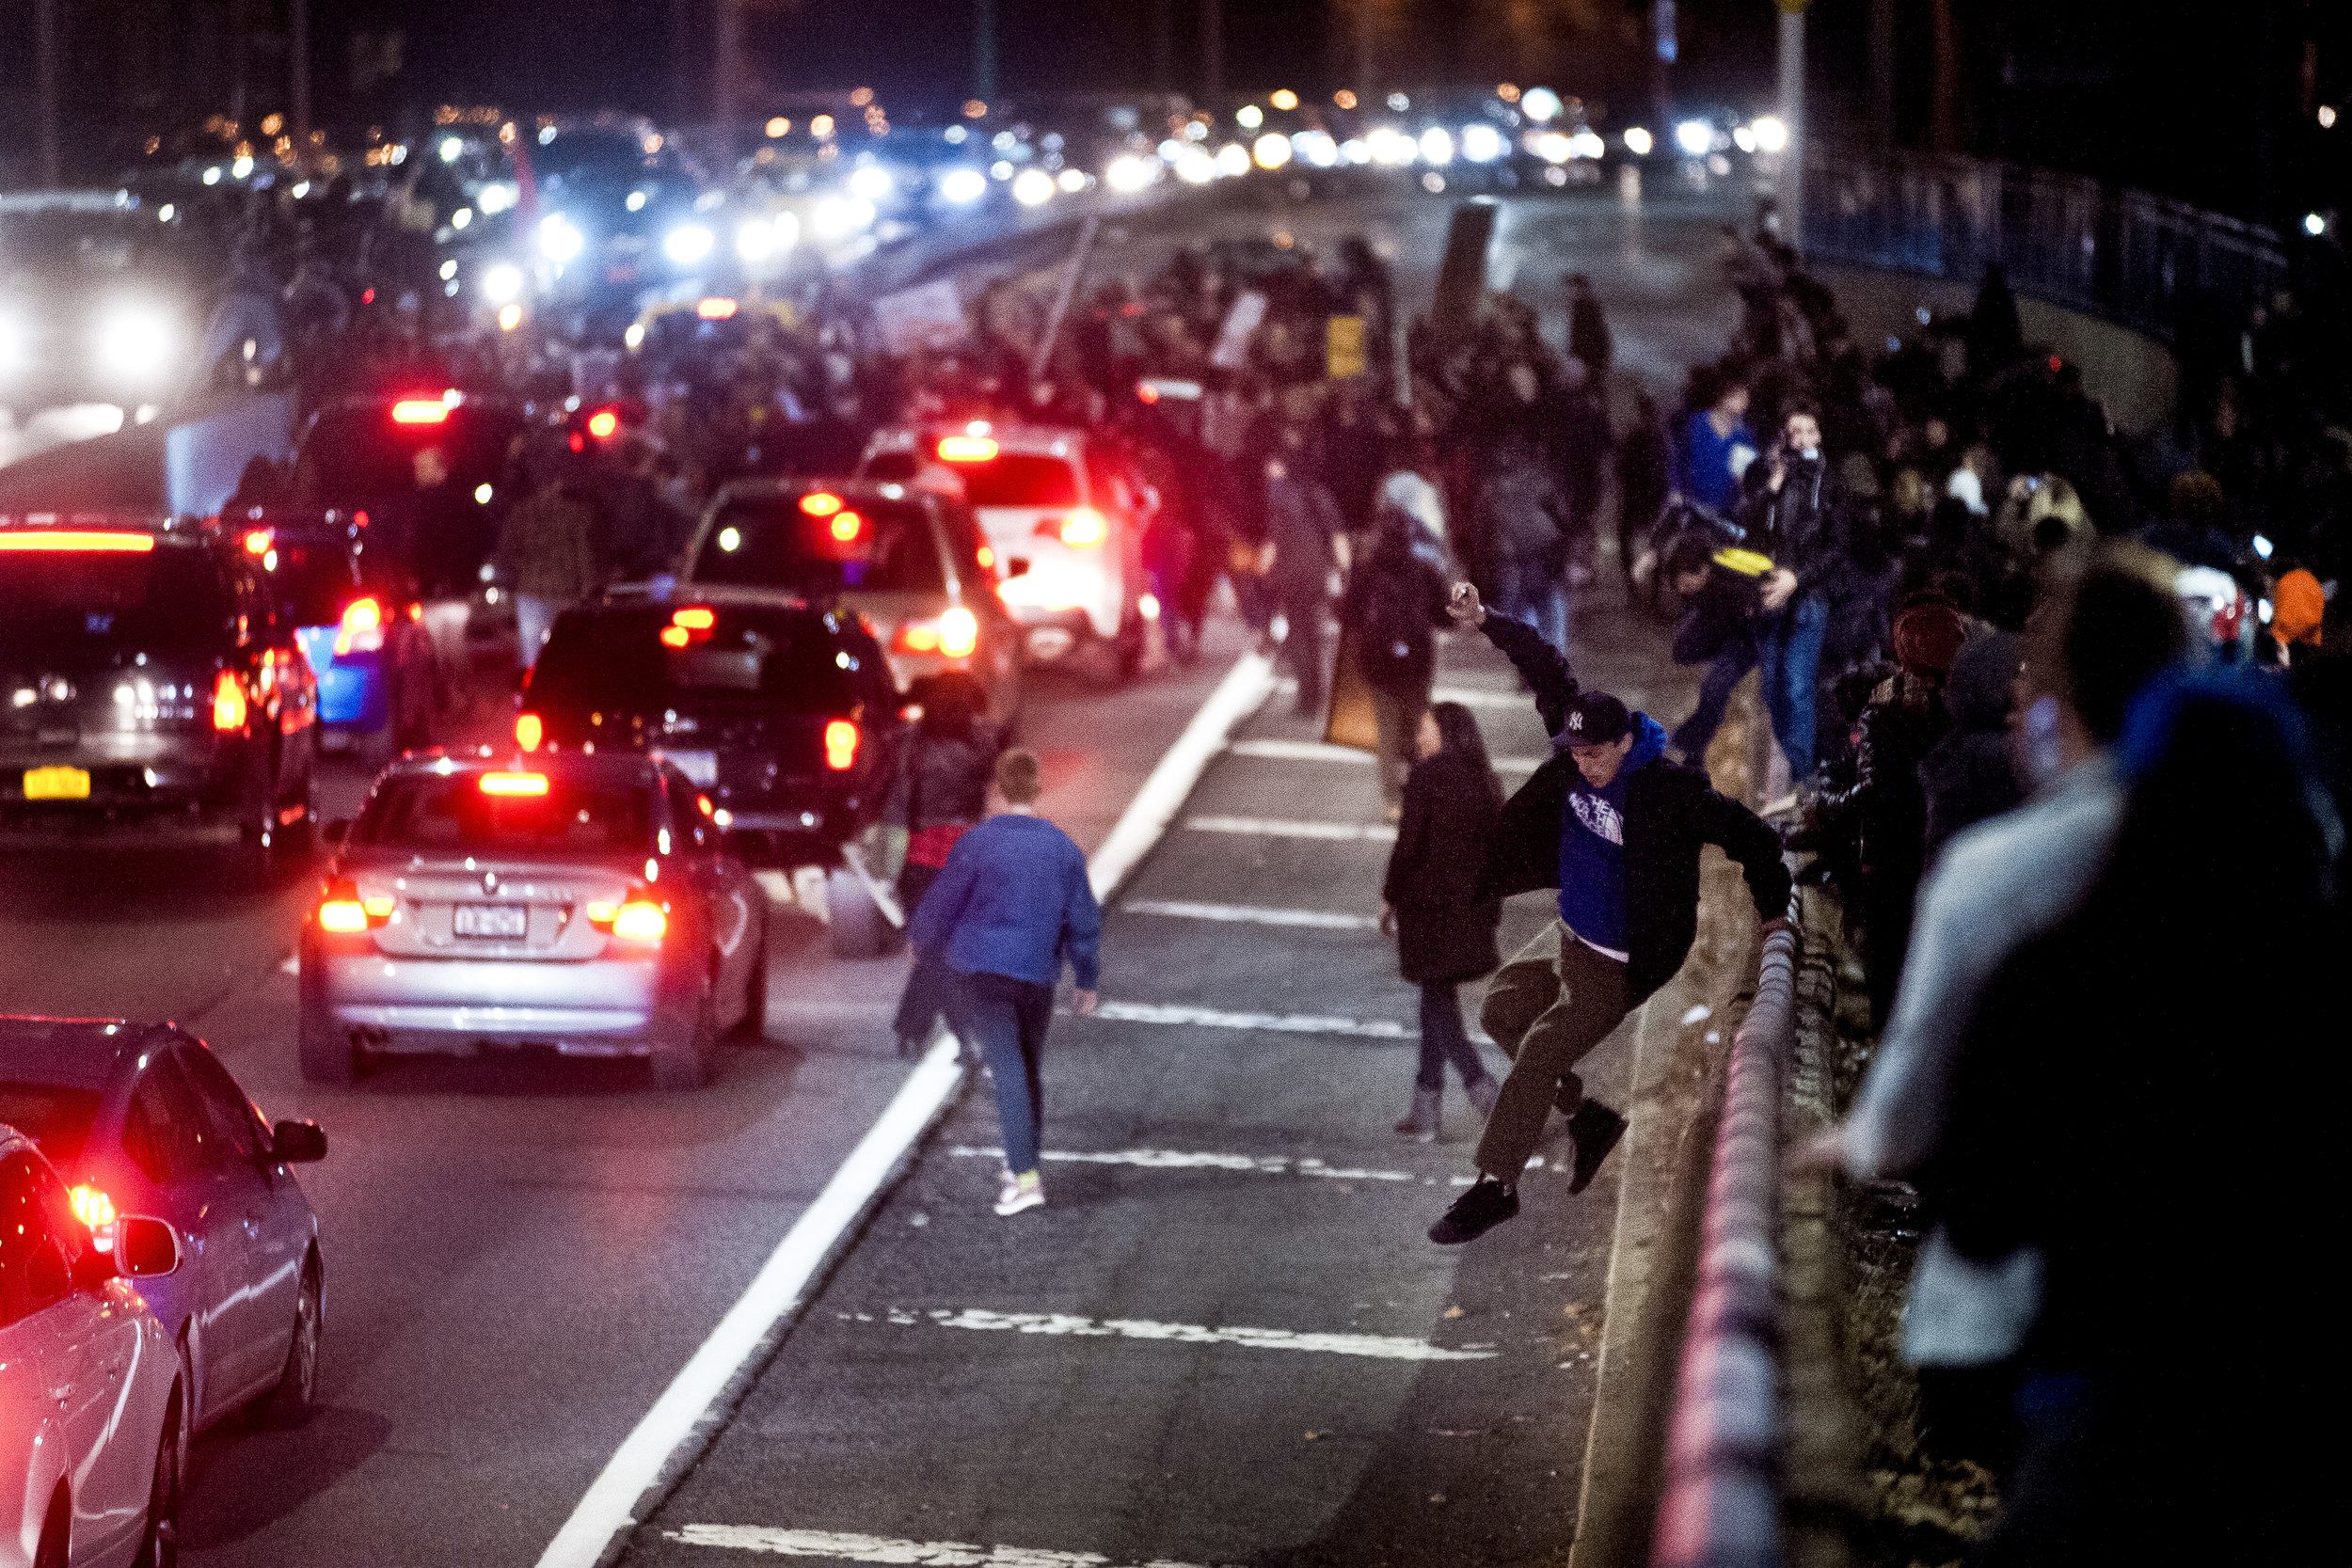 Demonstrators spill onto FDR drive at Houston street on November 25th 2014, blocking traffic in both directions in protest of a St. Louis Grand Jury decision not to indict Officer Darren Wilson.